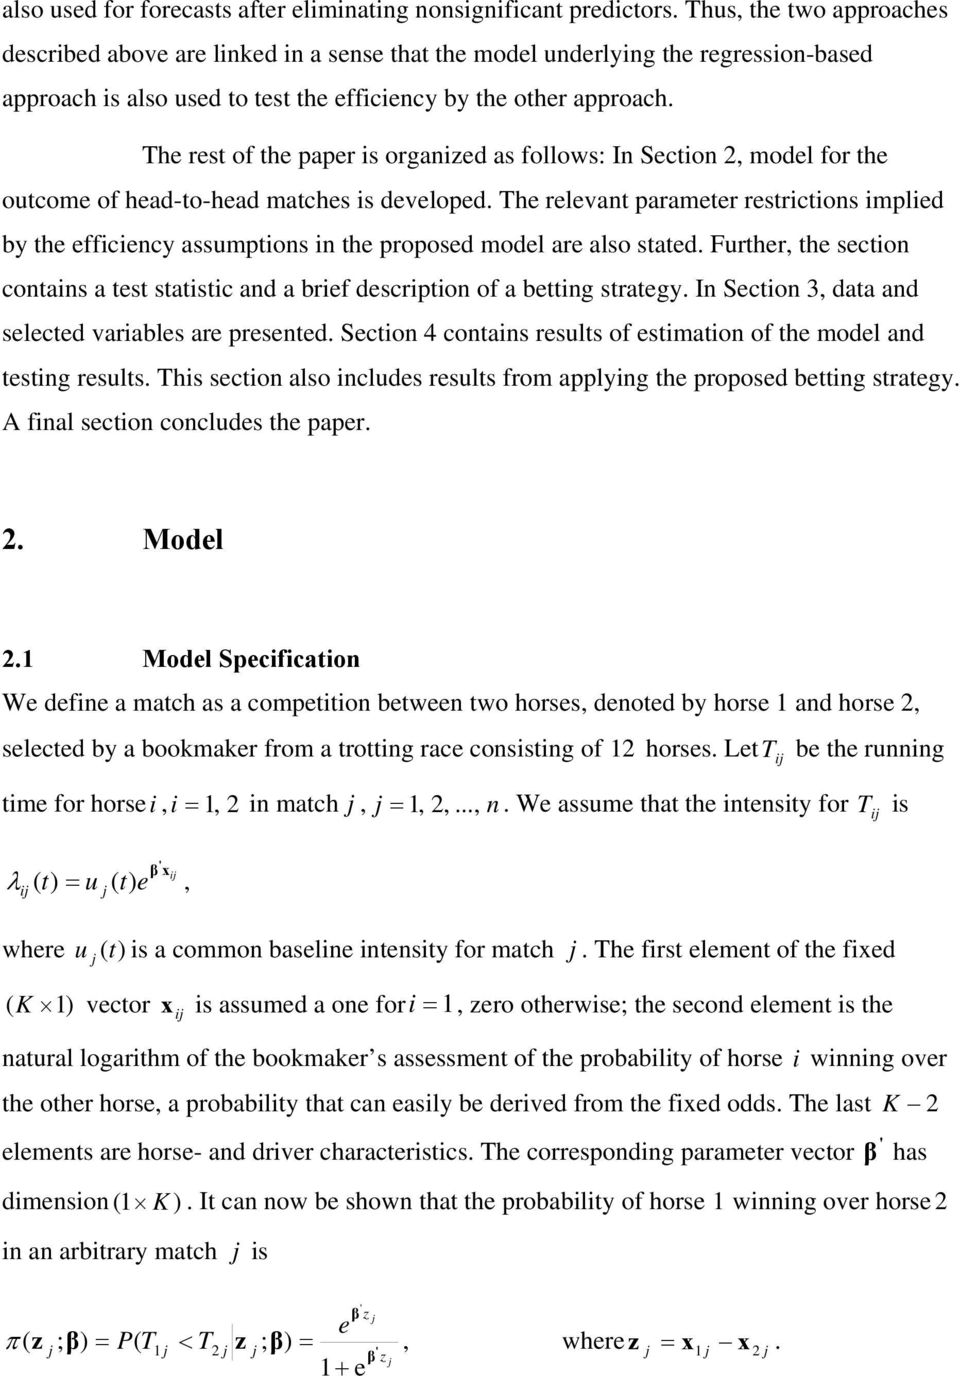 The rest of the paper is organized as follows: In Section 2, model for the outcome of head-to-head matches is developed.